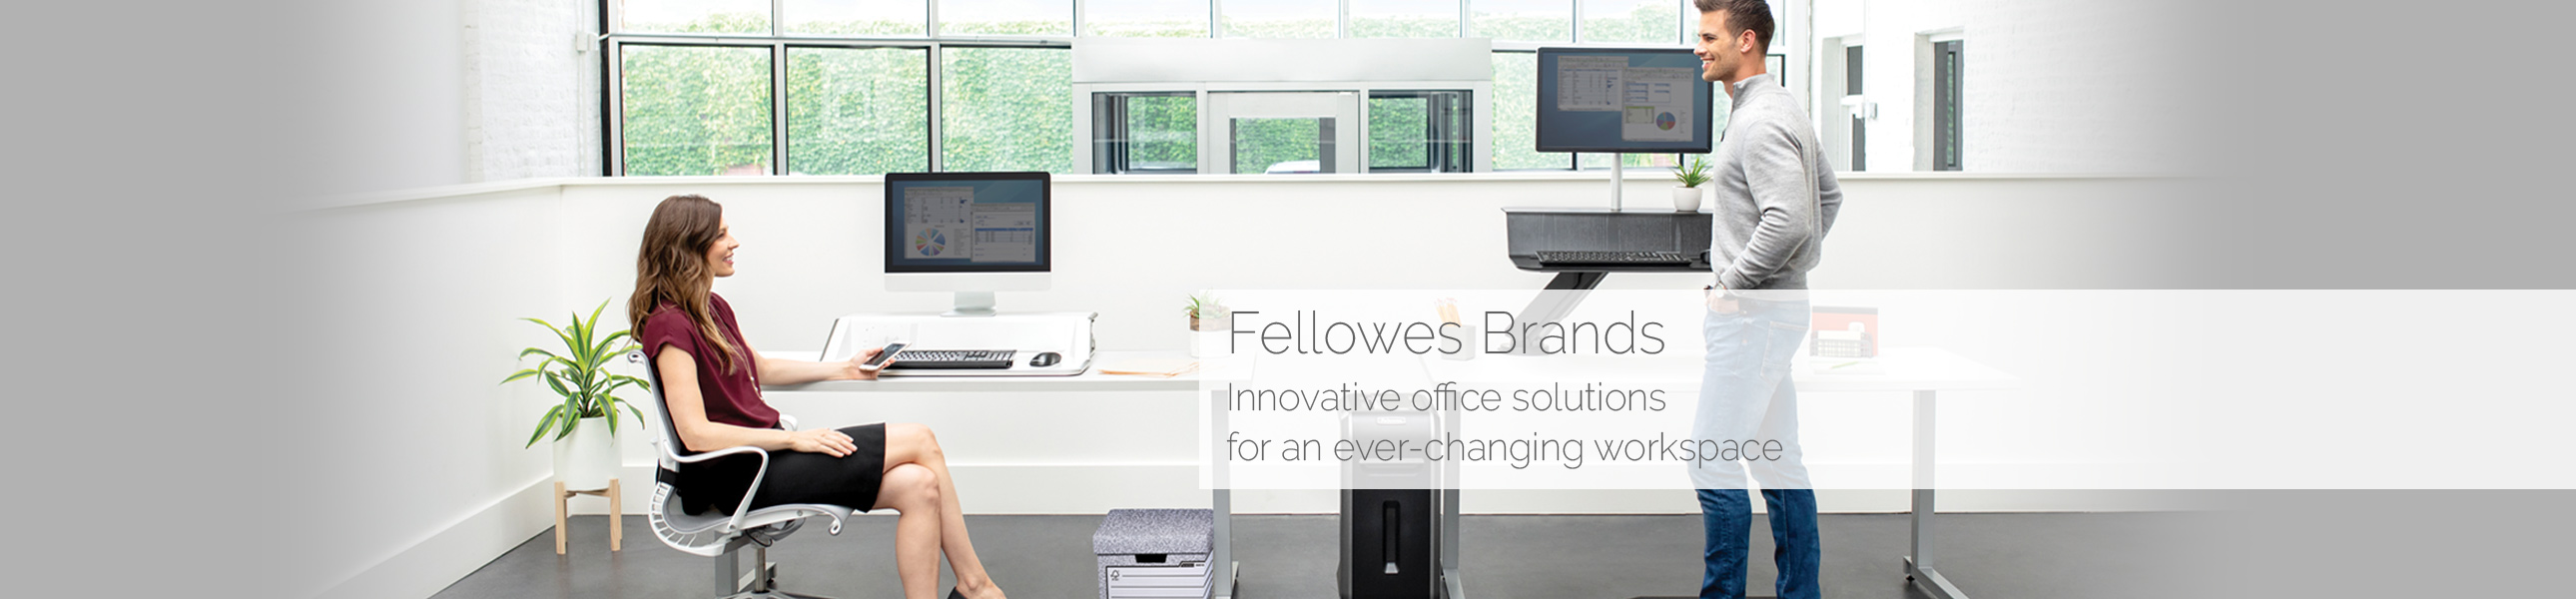 Fellowes innovative office solutions for an ever-changing workplace